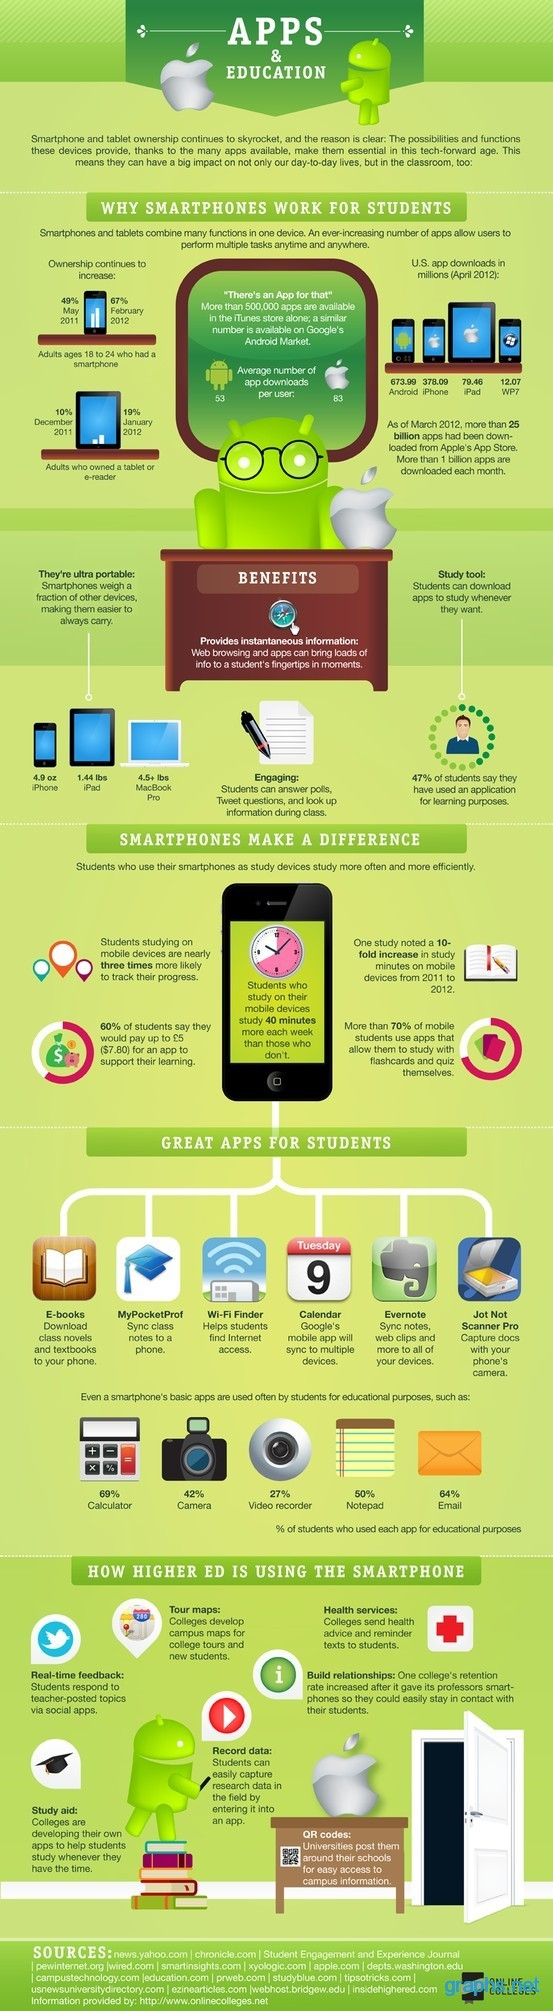 Benefits of Smartphone Apps for Students